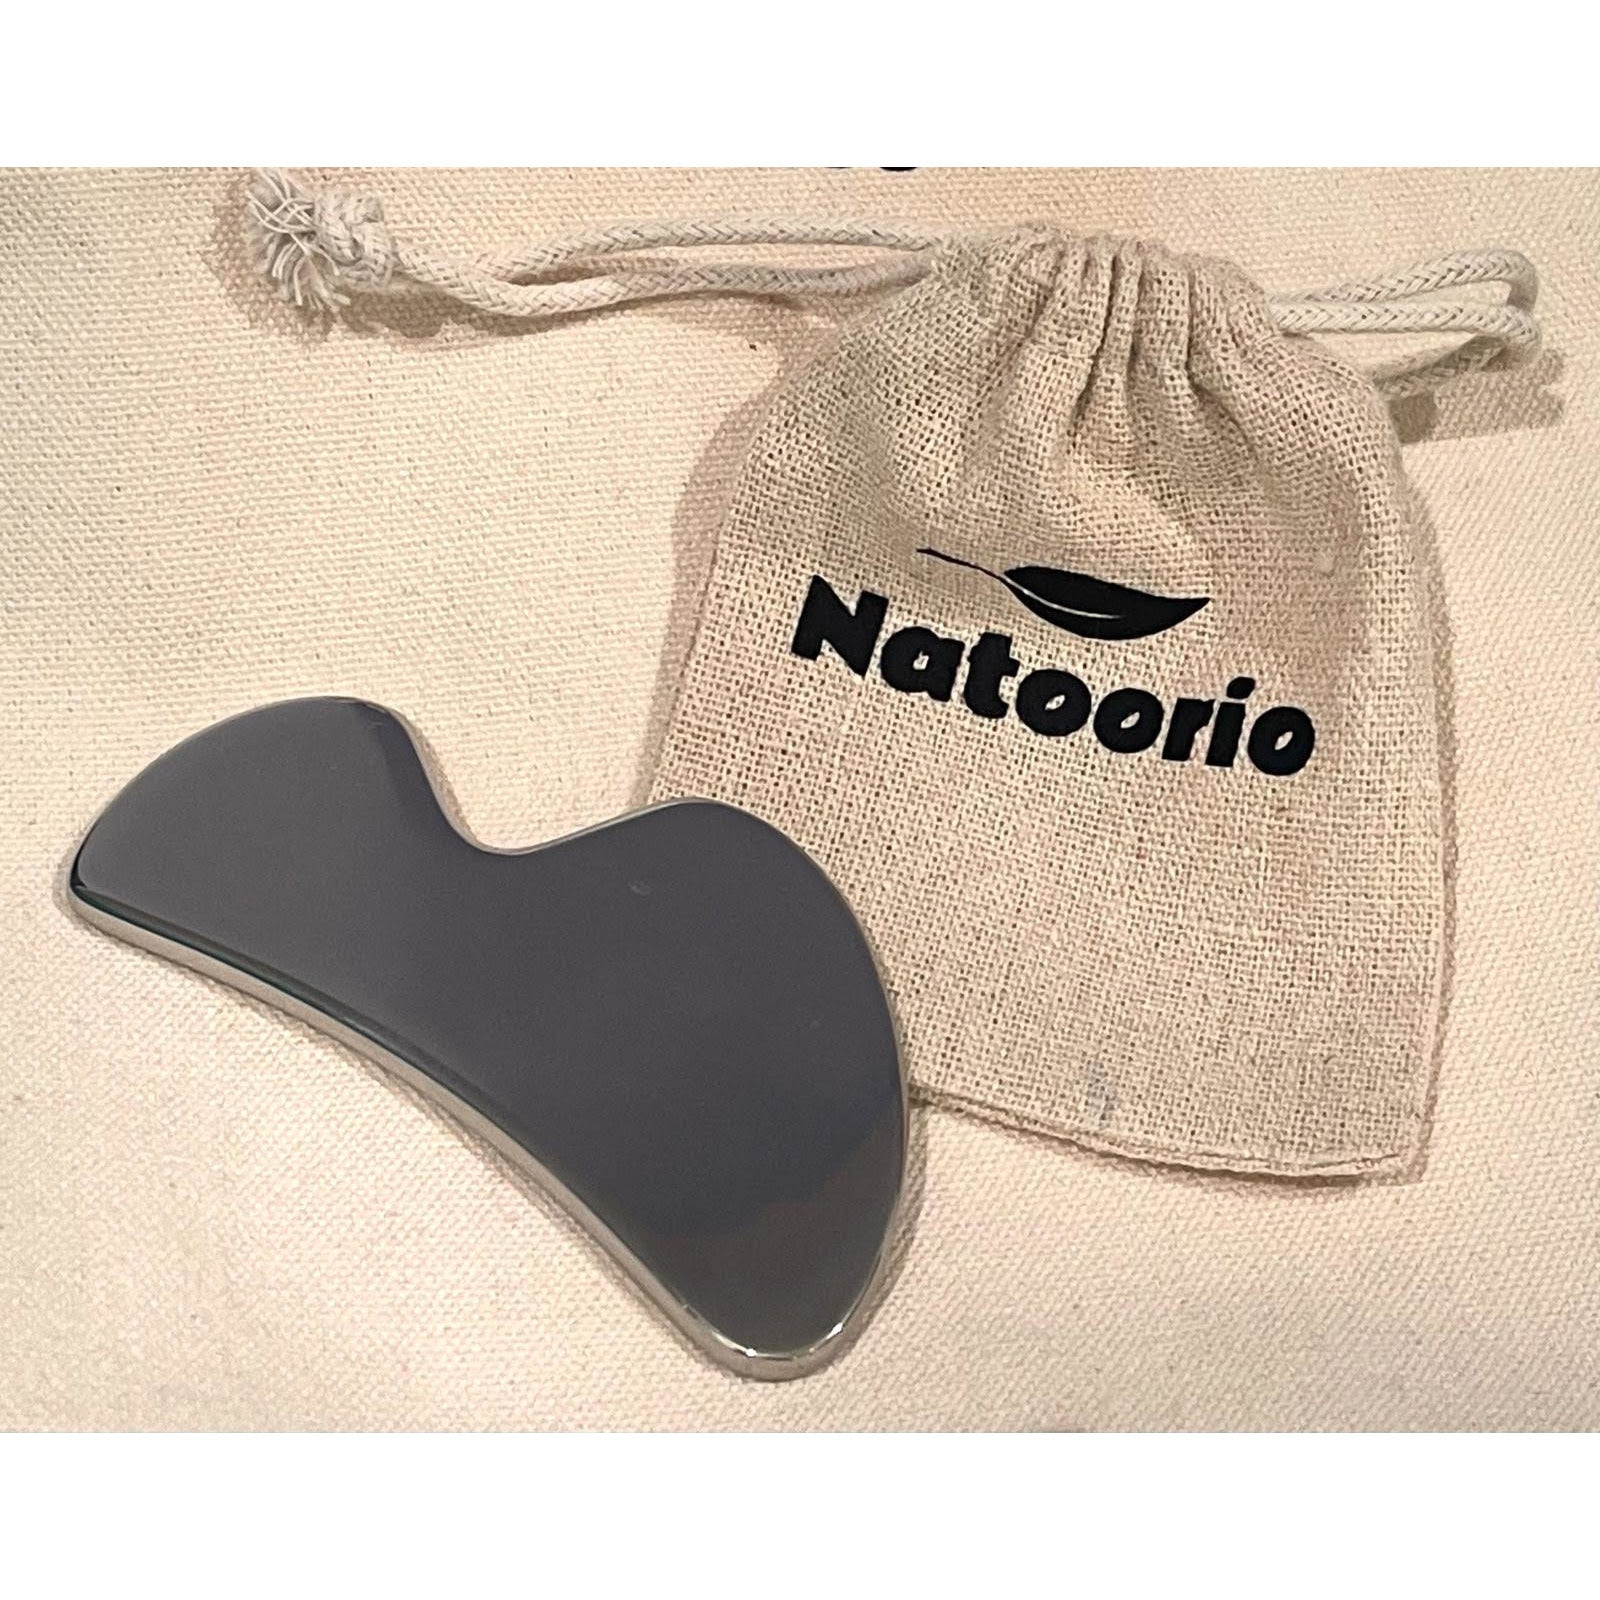 Gua Sha for Face and Body in Stainless steel - Relieves muscle tension - natoorio